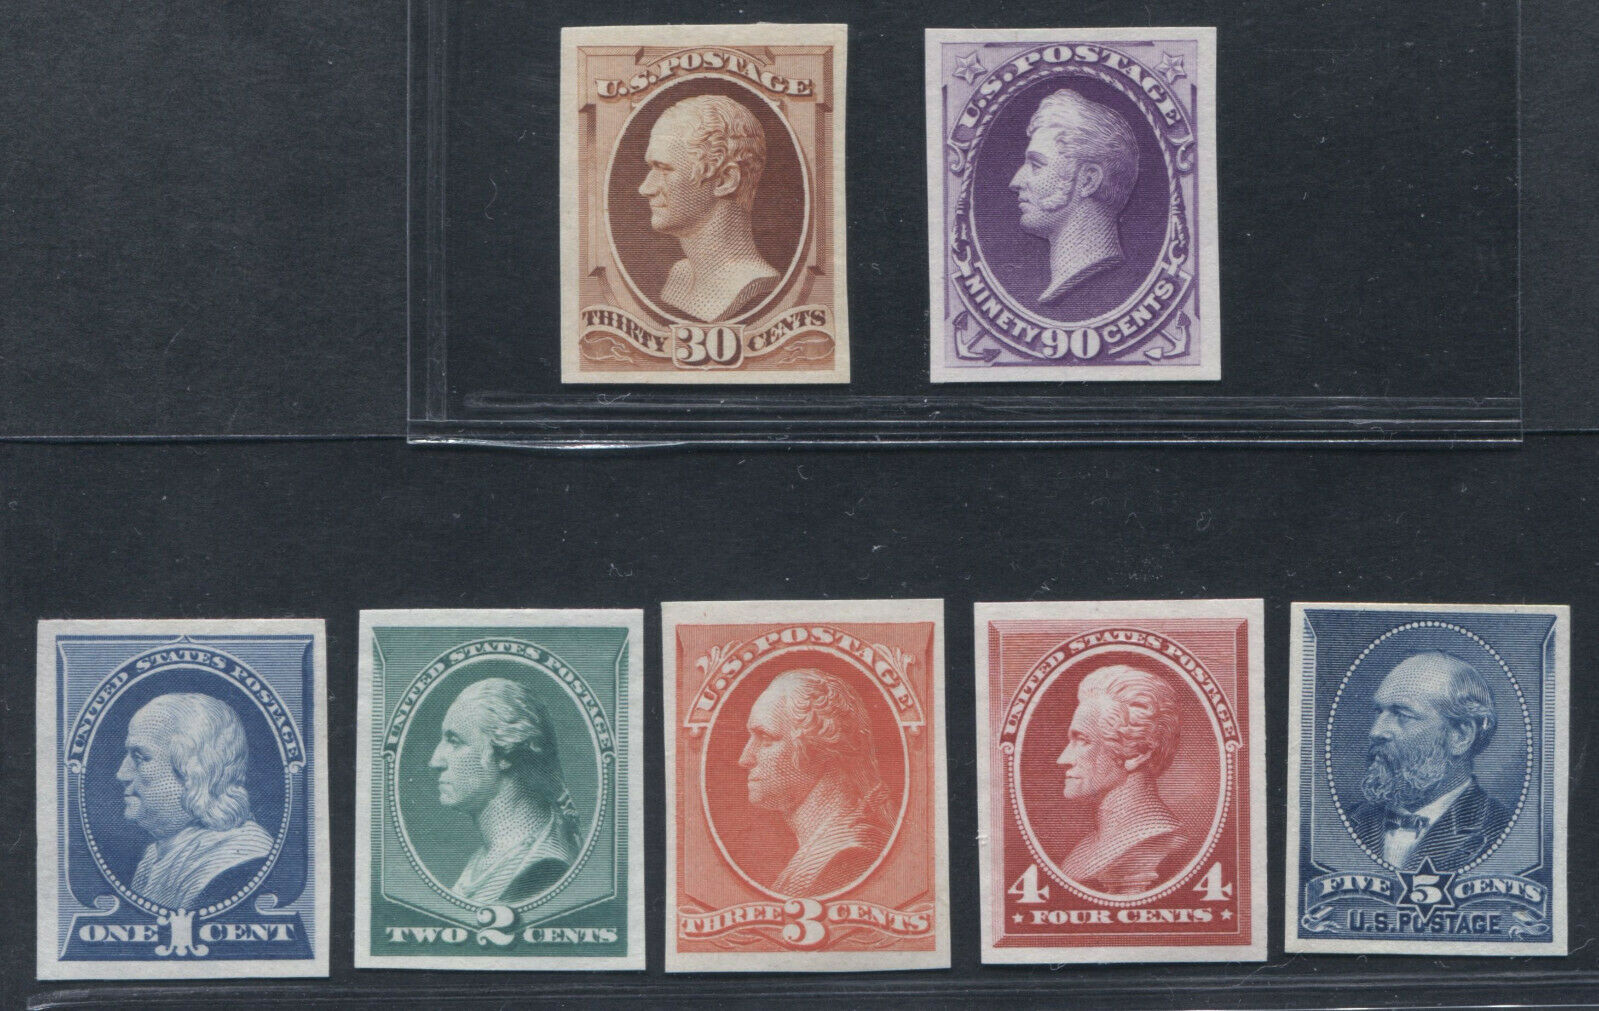 212P3-218P3 Plate Proofs on India Very Fine SCV $610 (9/27 TJ)